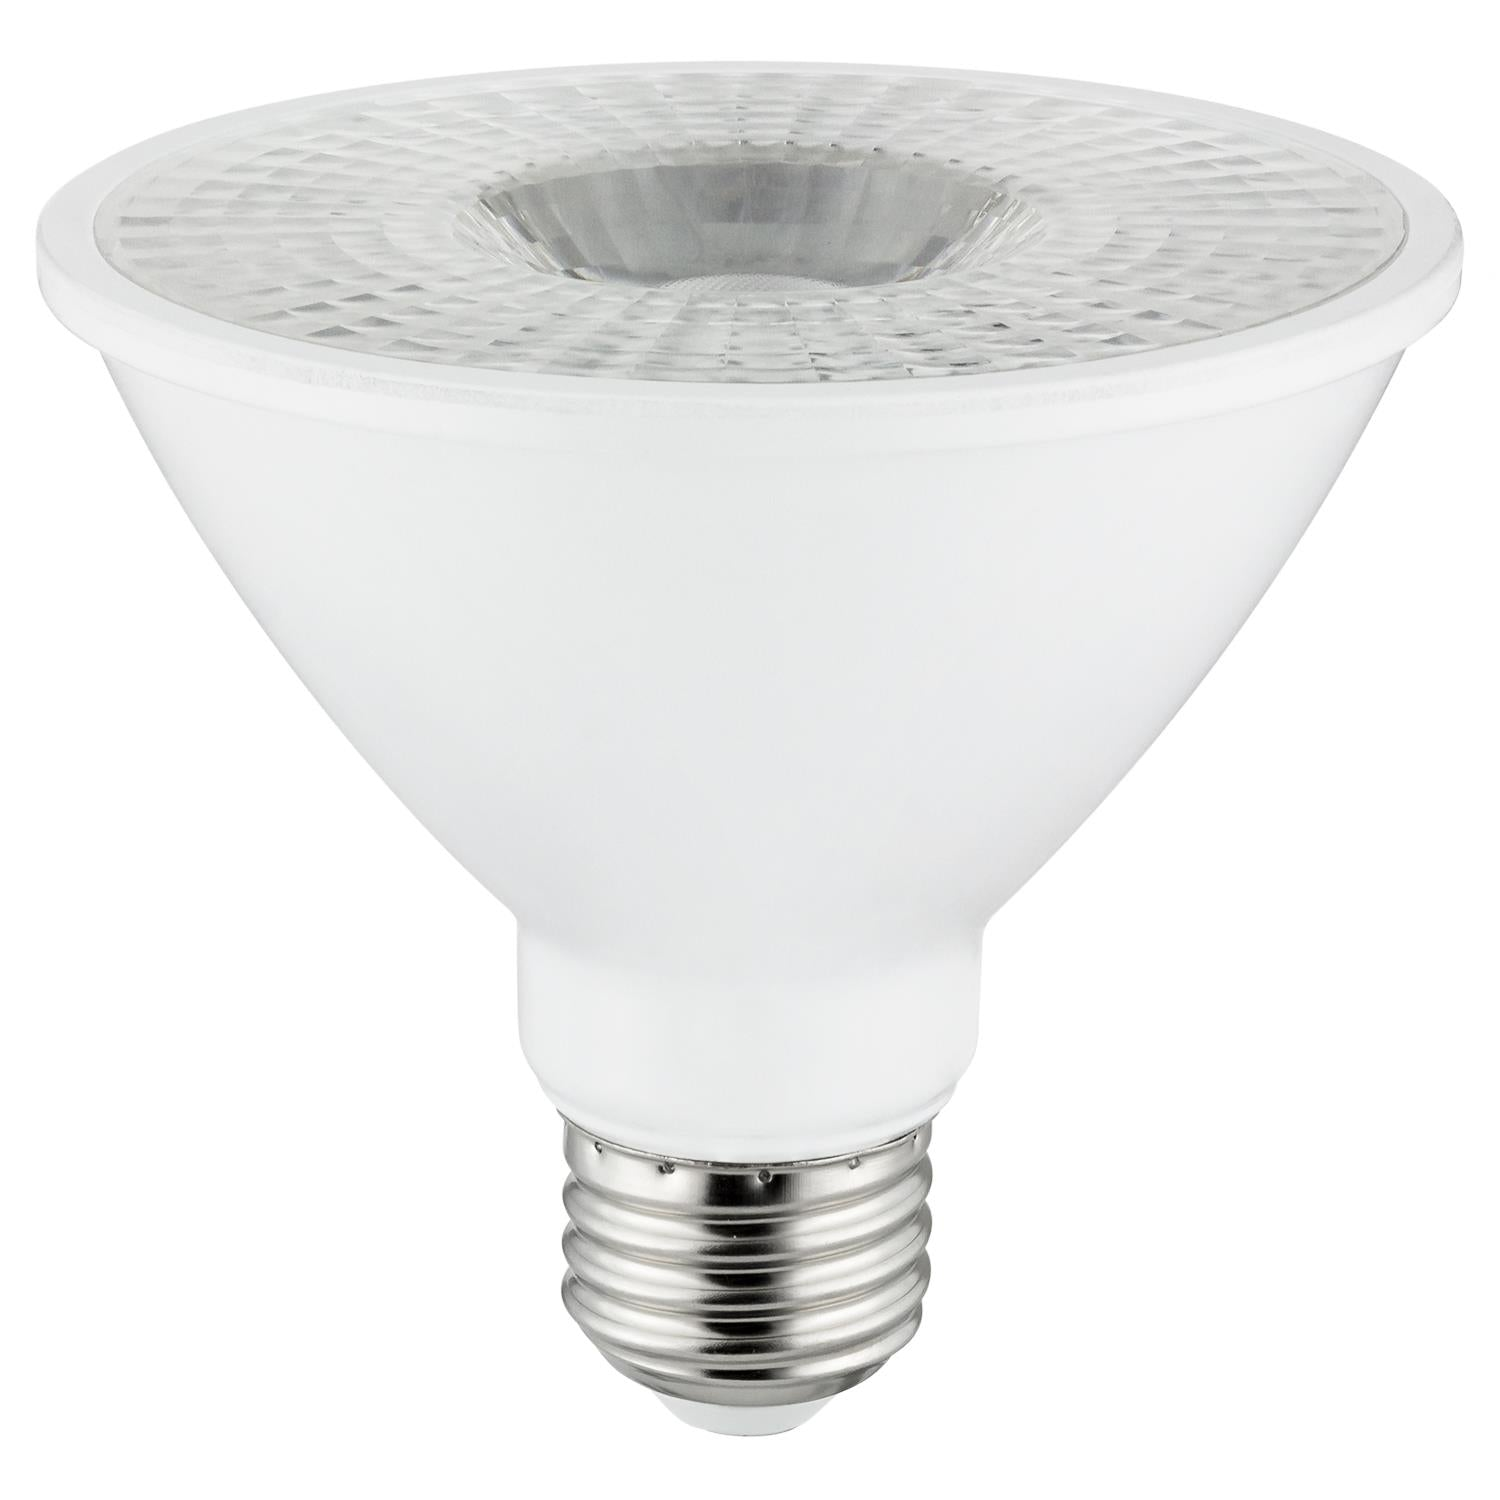 SUNLITE 10w LED Par30 Short Neck Dimmable 5000K Super White Light Bulb